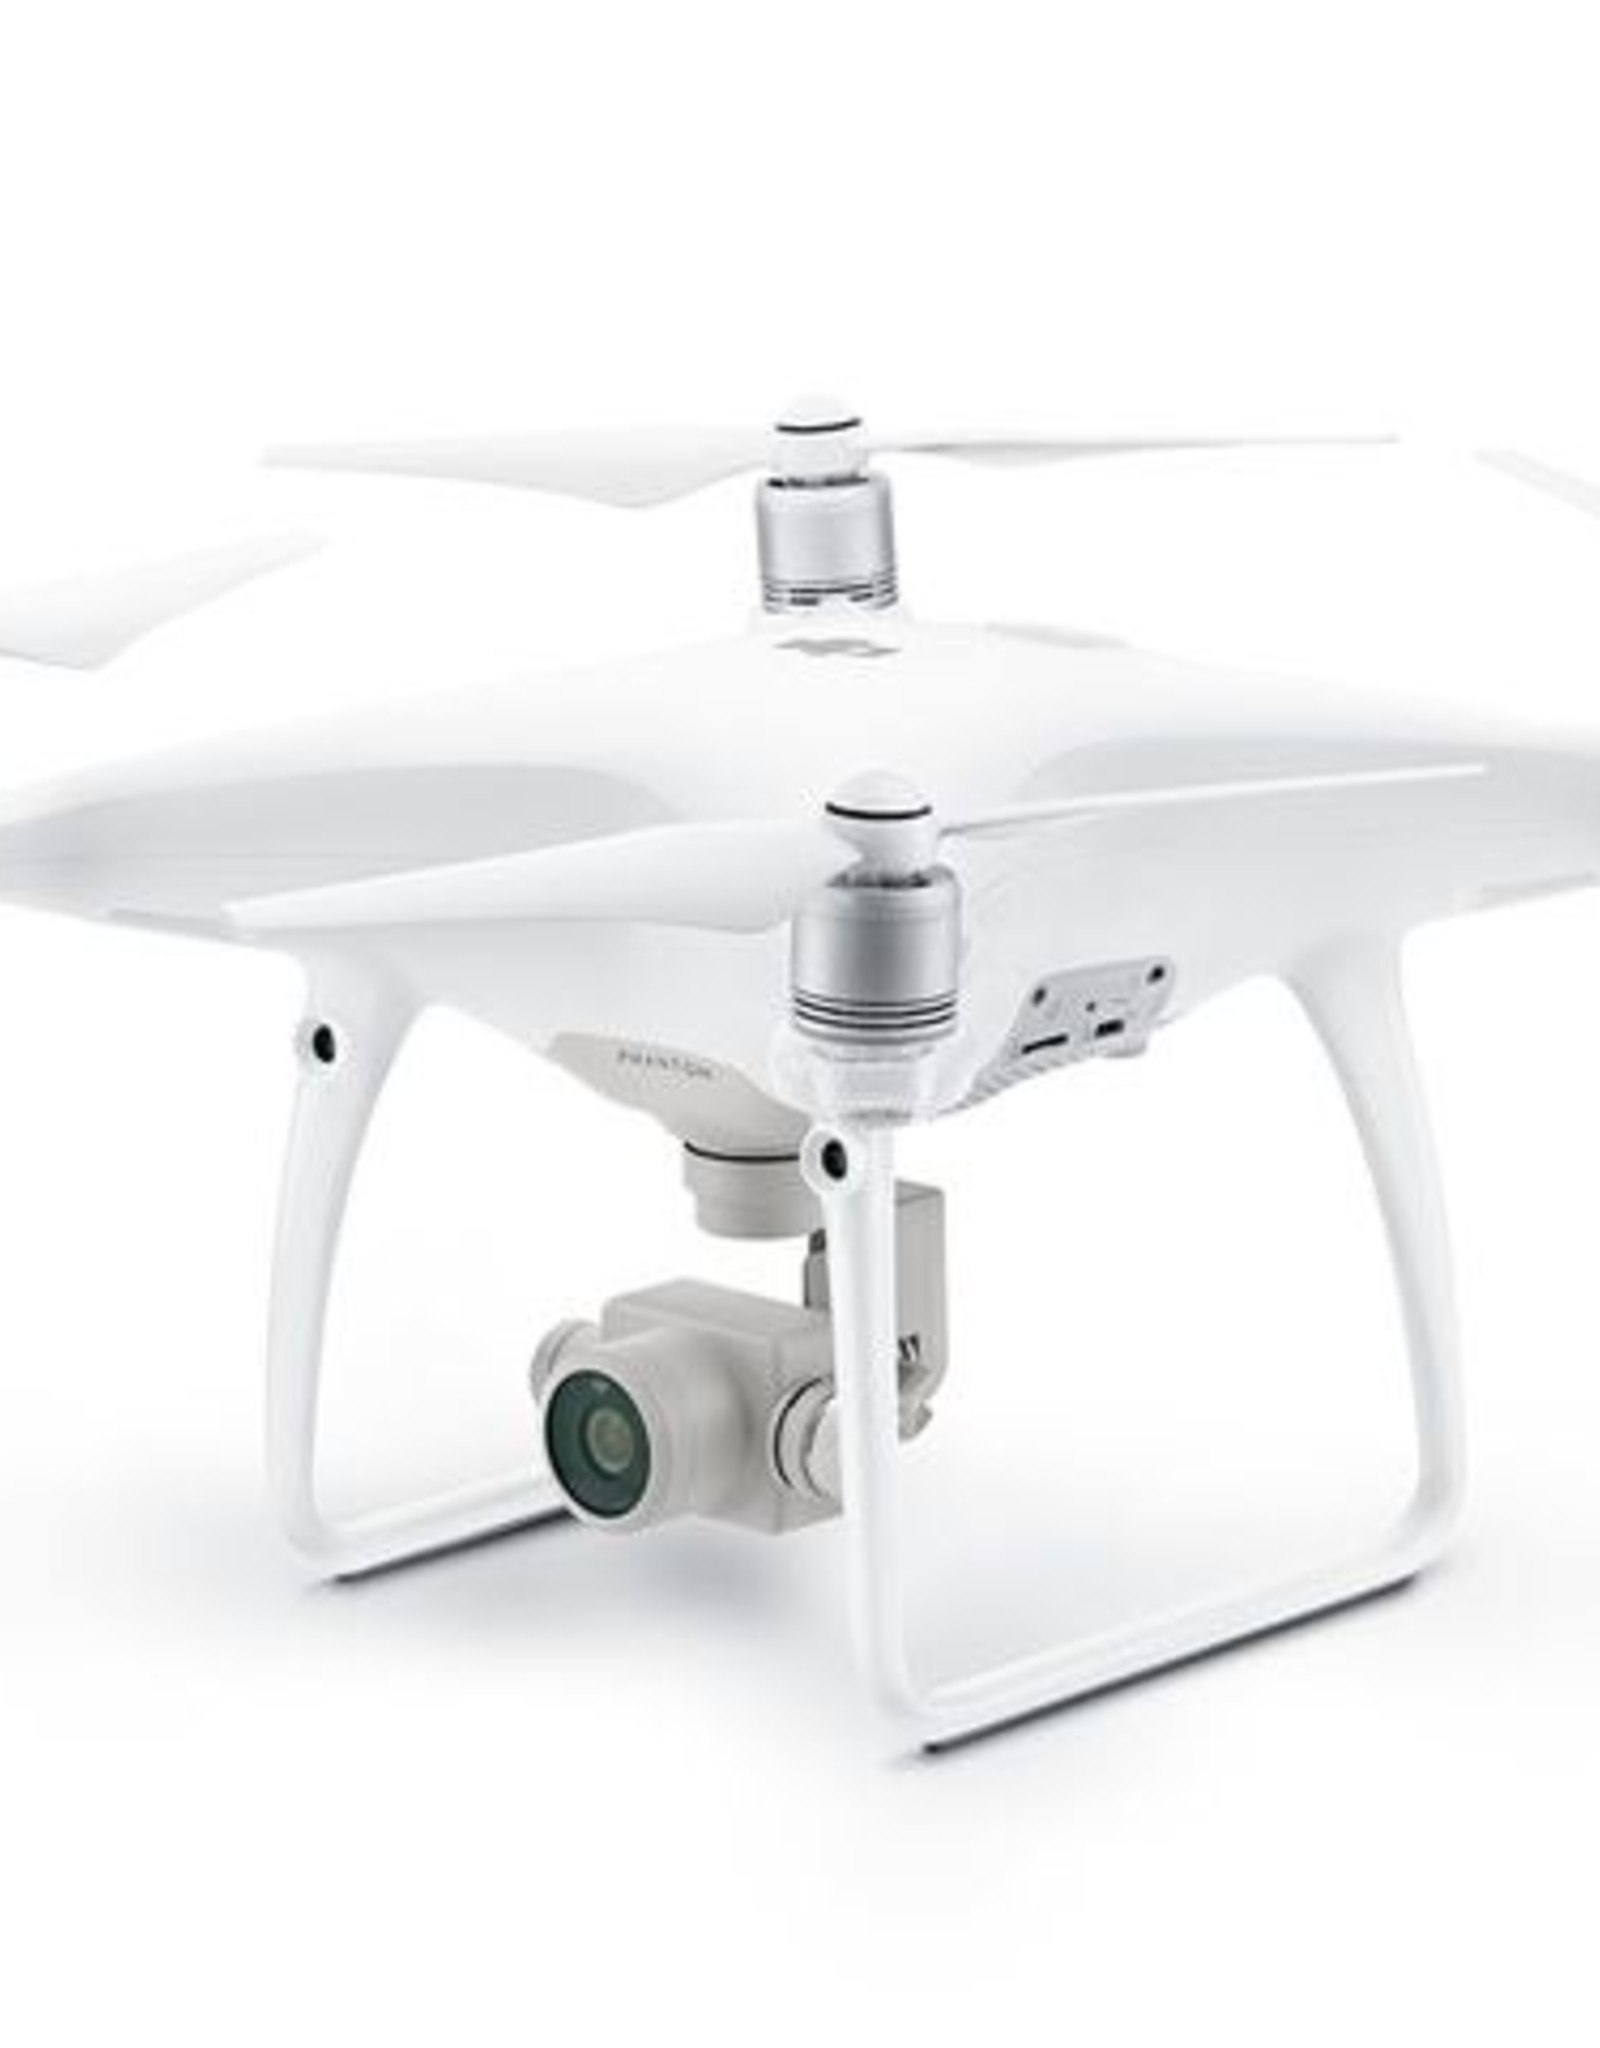 DJI DJI PHANTOM 4 ADVANCED CP.PT.000689